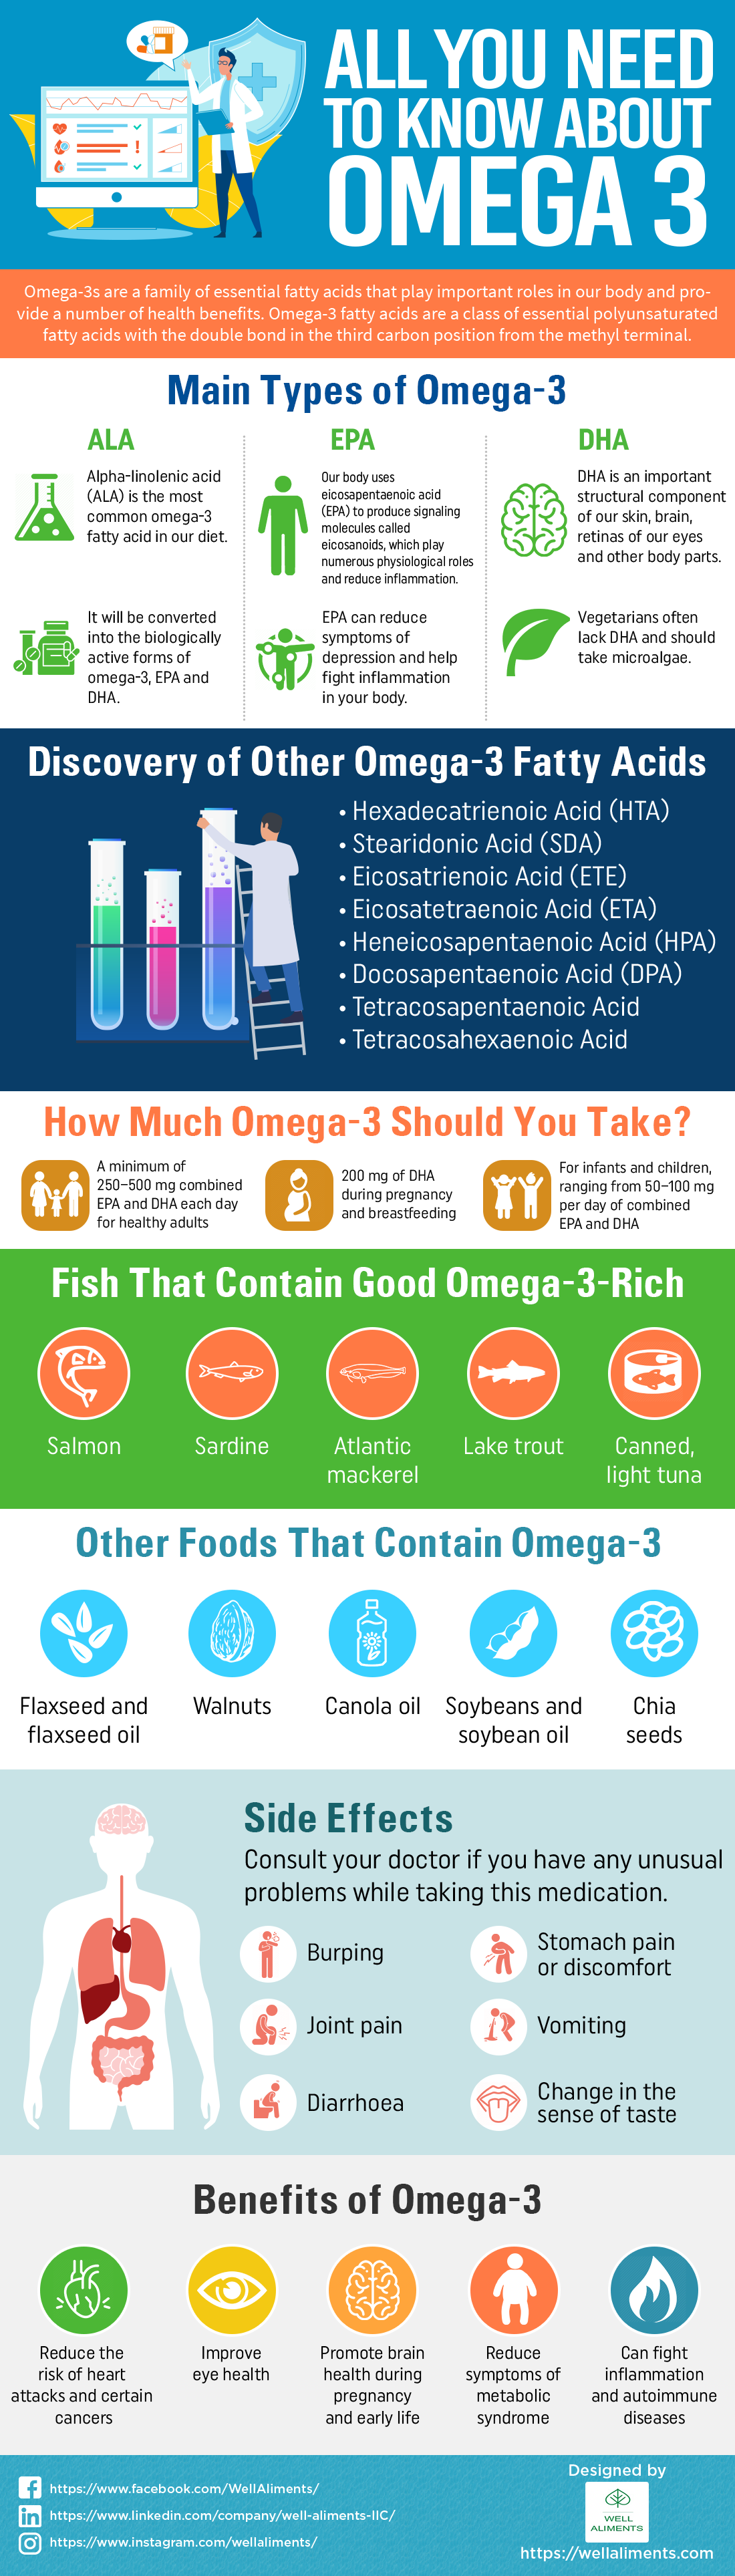 All you need to know about Omega 3